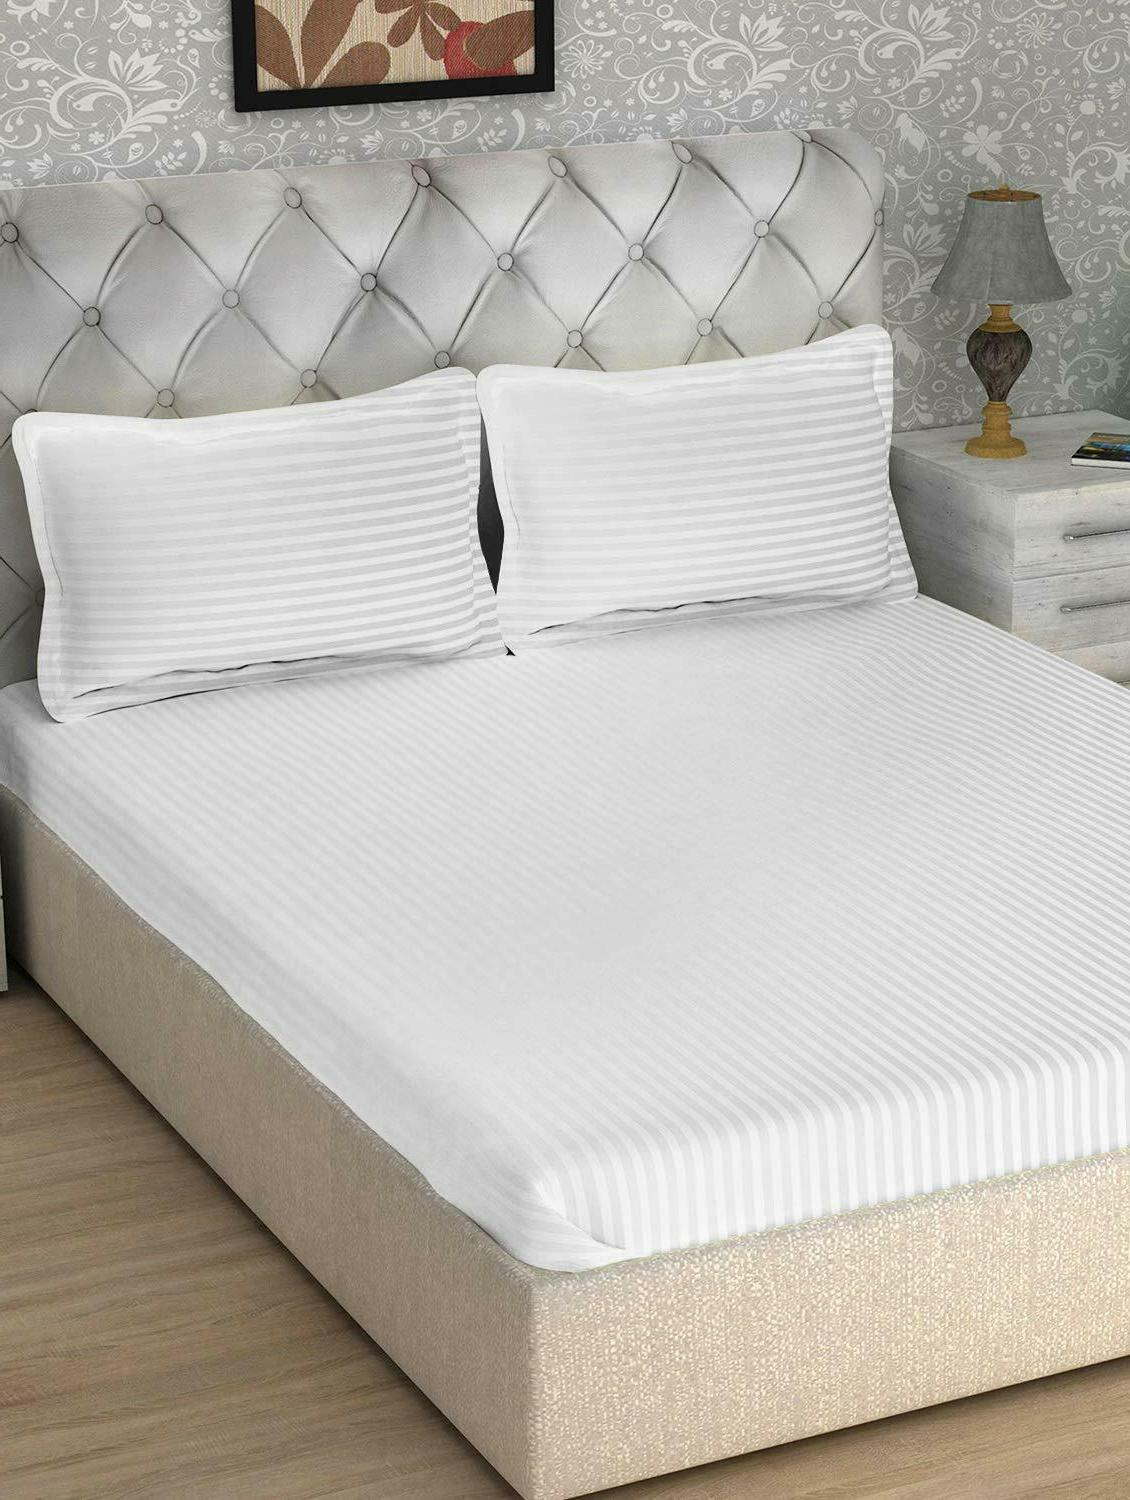 6 Sets 800 Tc Queen/King Size Sheets